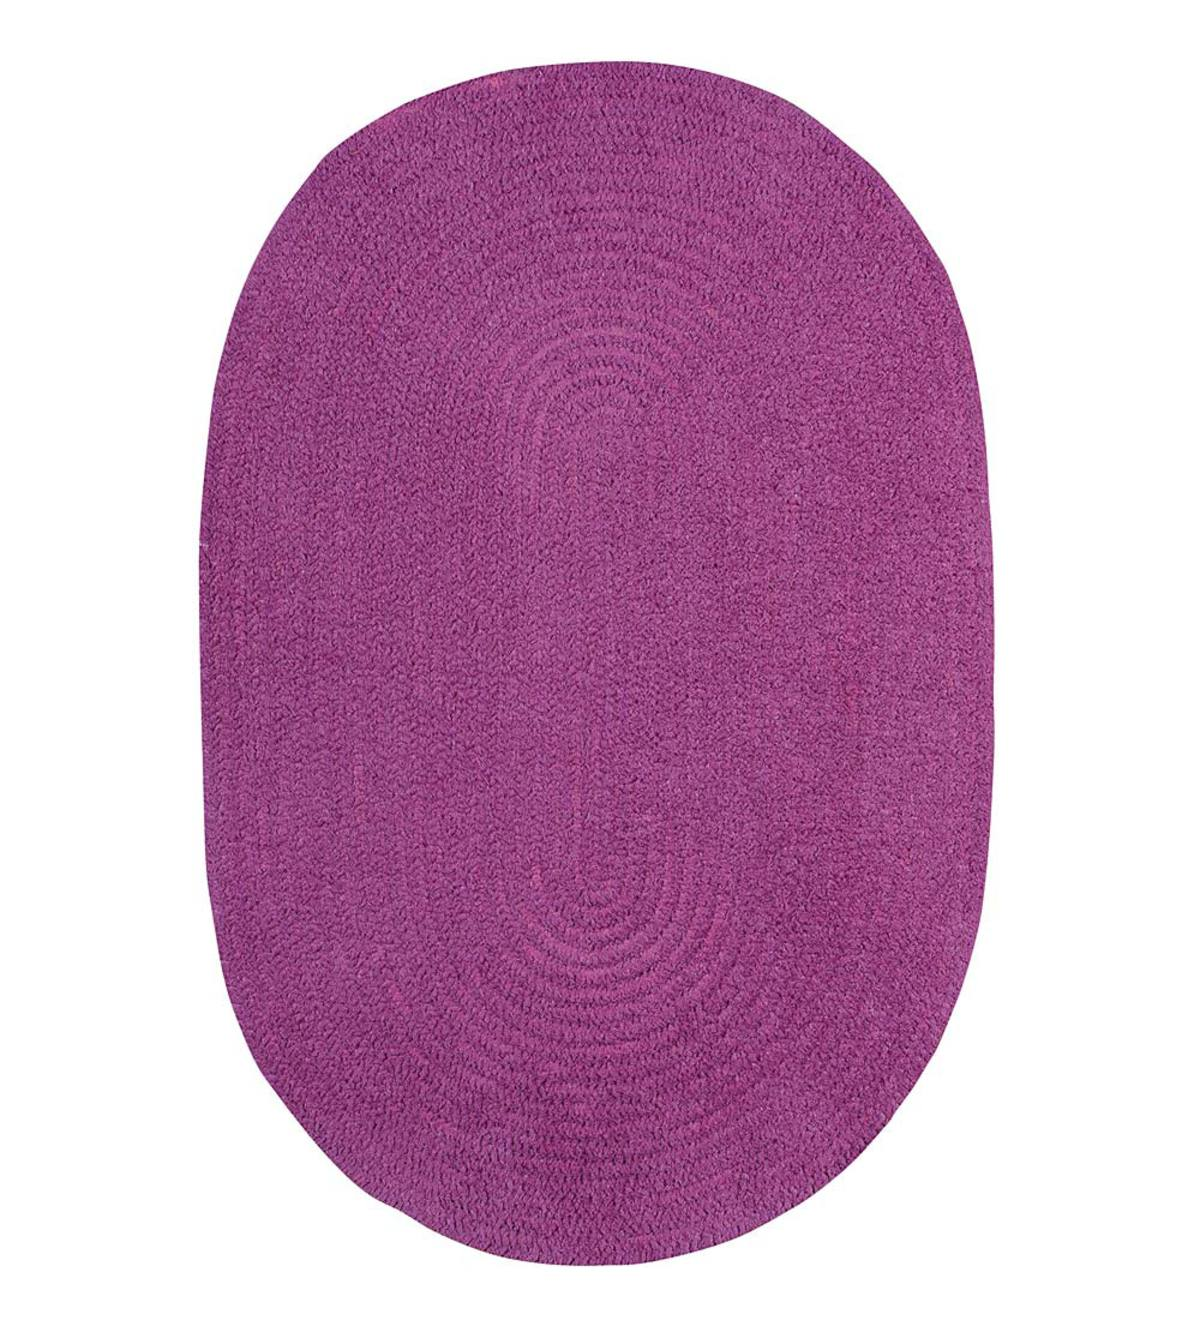 Chenille Oval Braided Area Rug, 9' x 12' - Wildberry